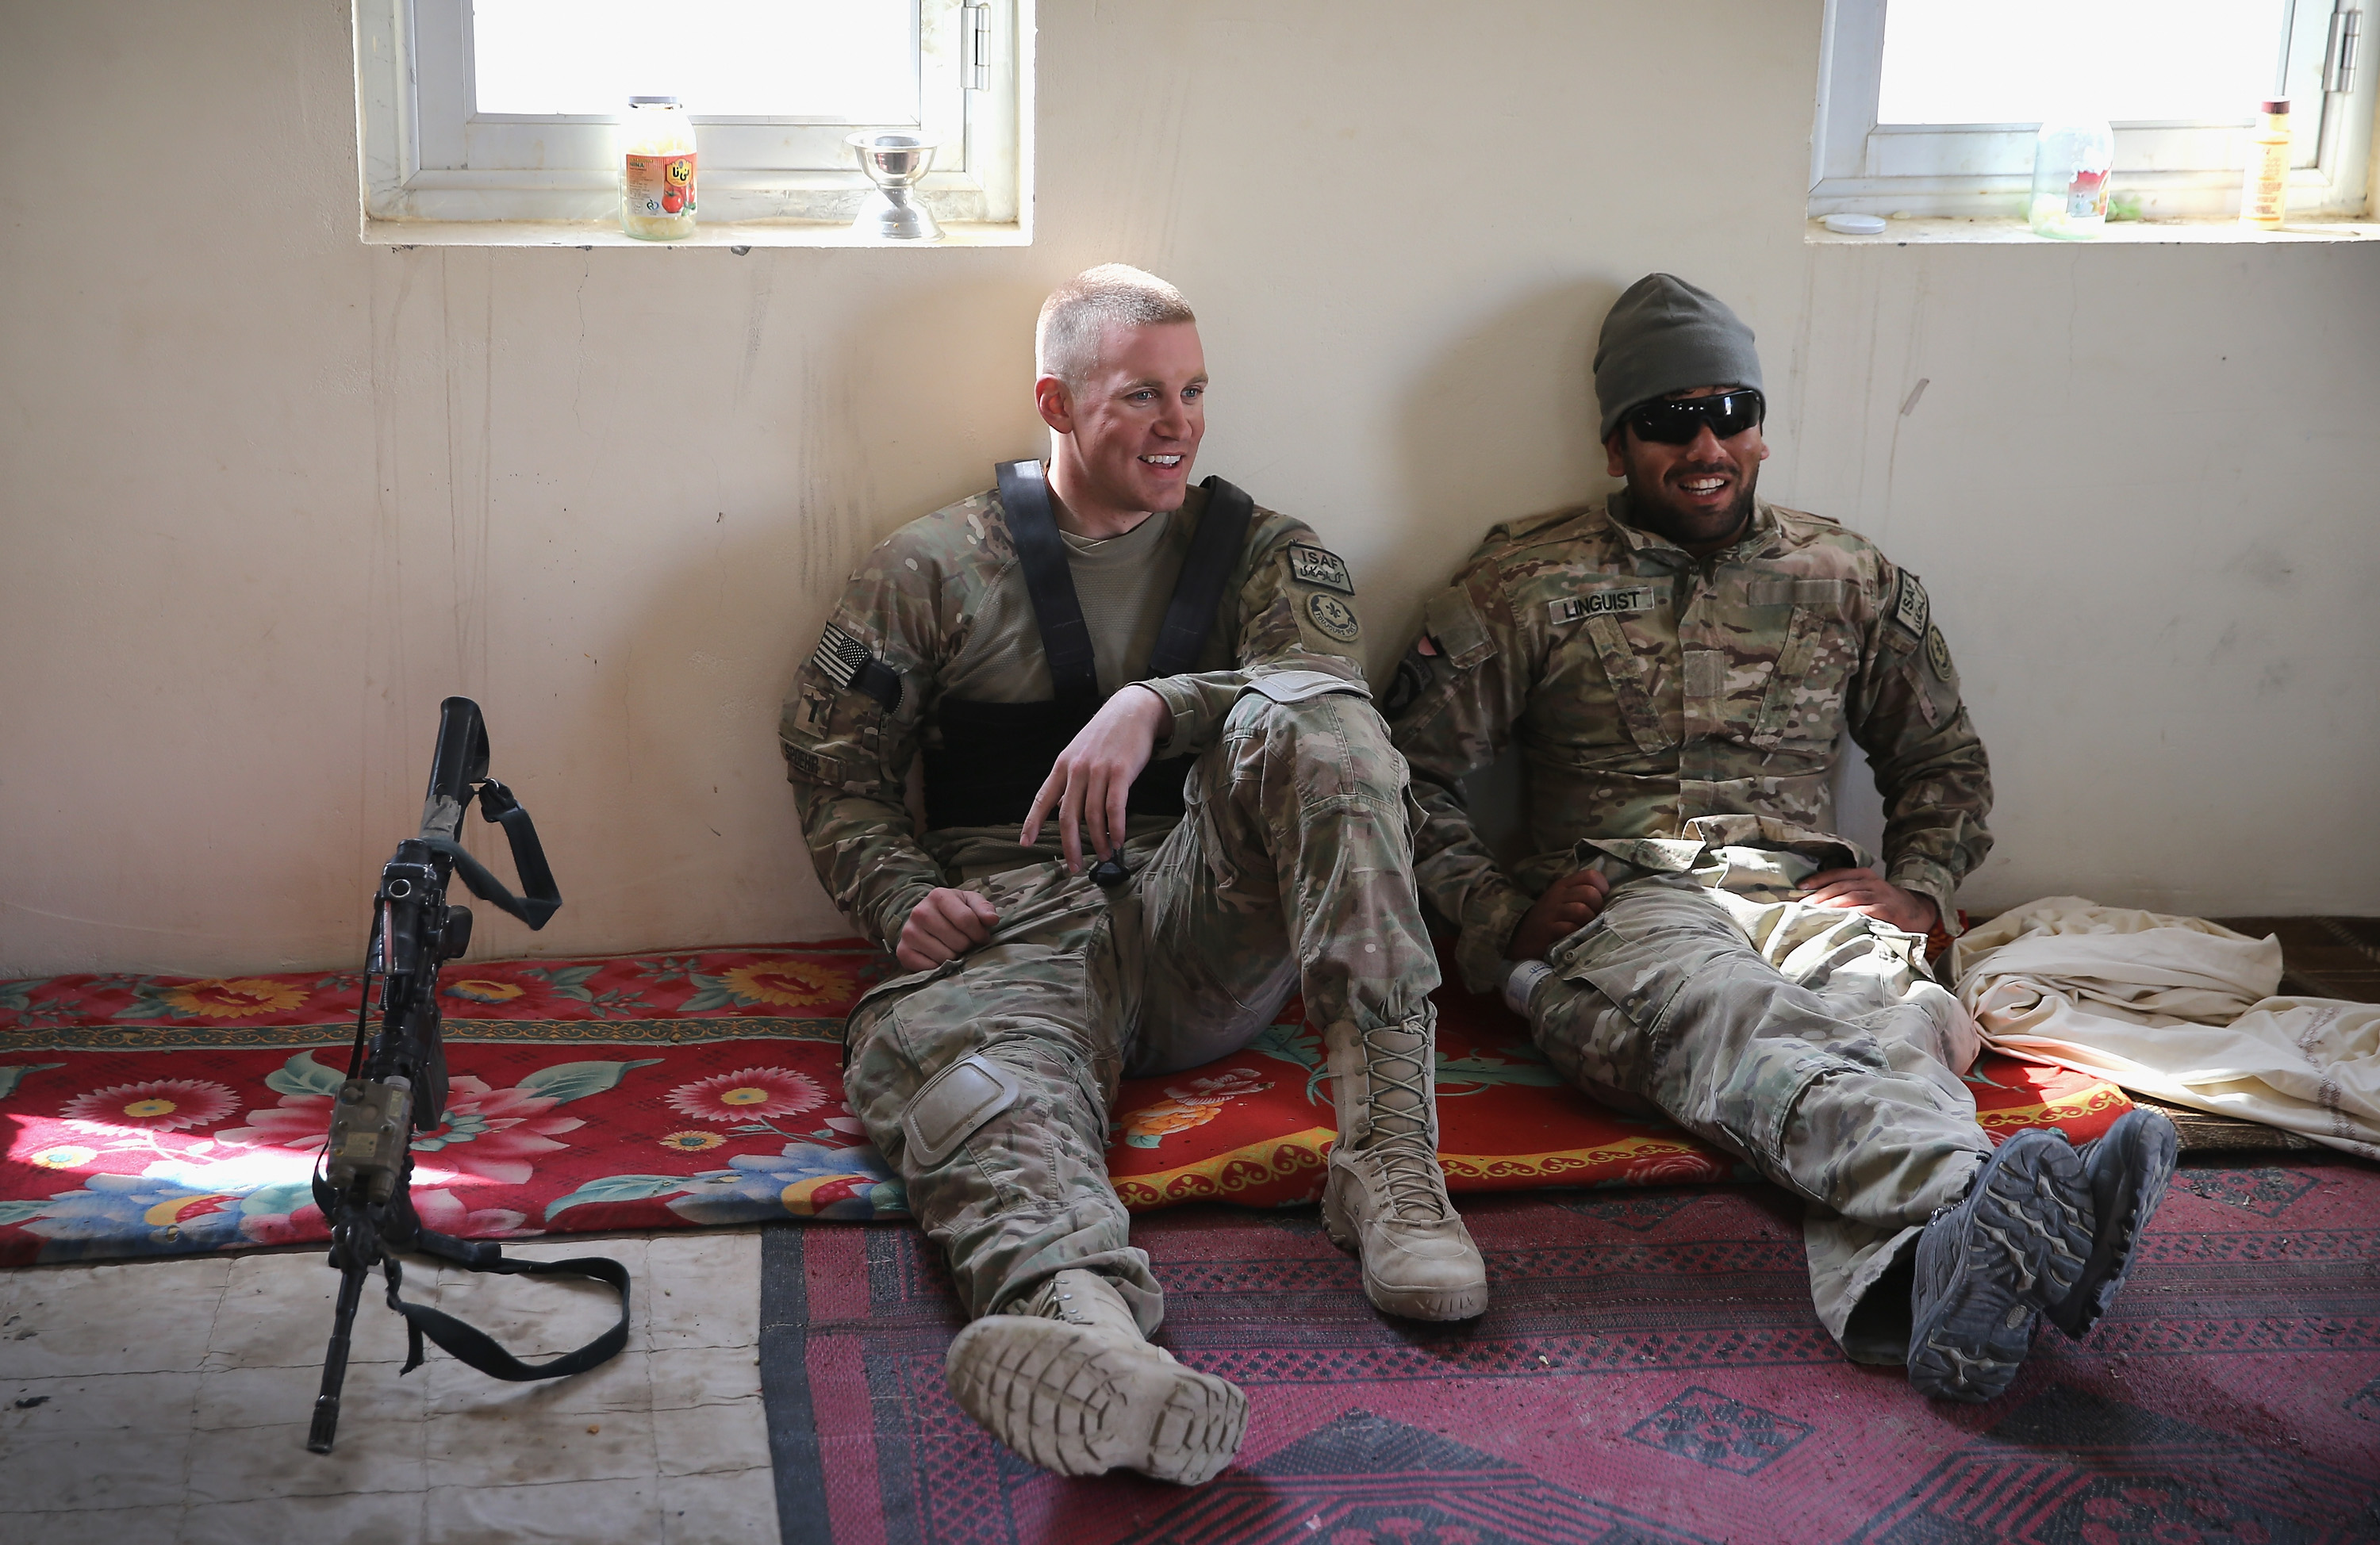 Why should Afghans Enjoy their Cellphone Service at the Cost of US Lives?